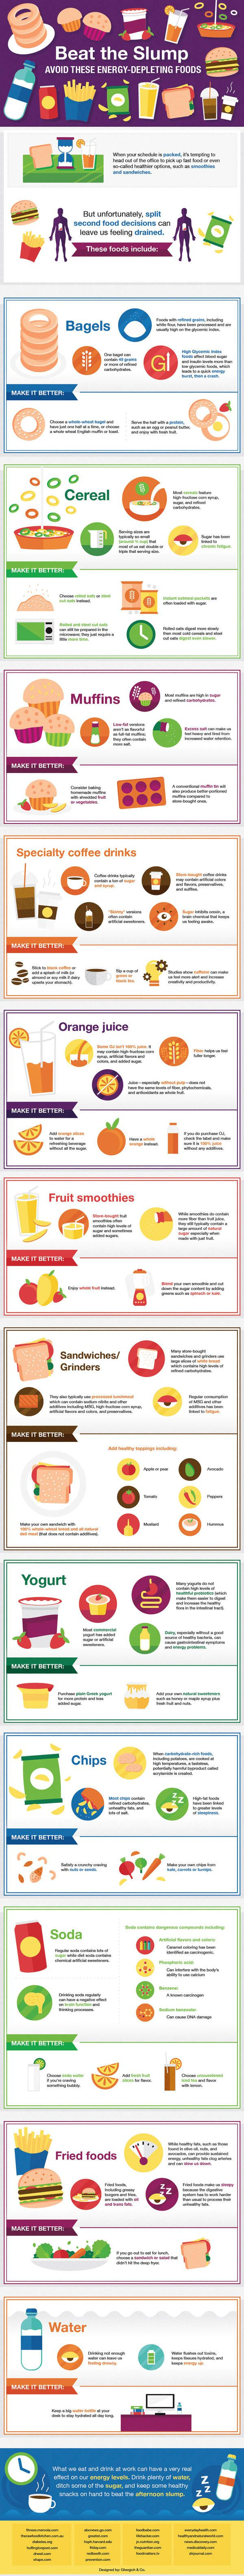 Avoid These Foods to Keep Your Energy Up (Infographic)